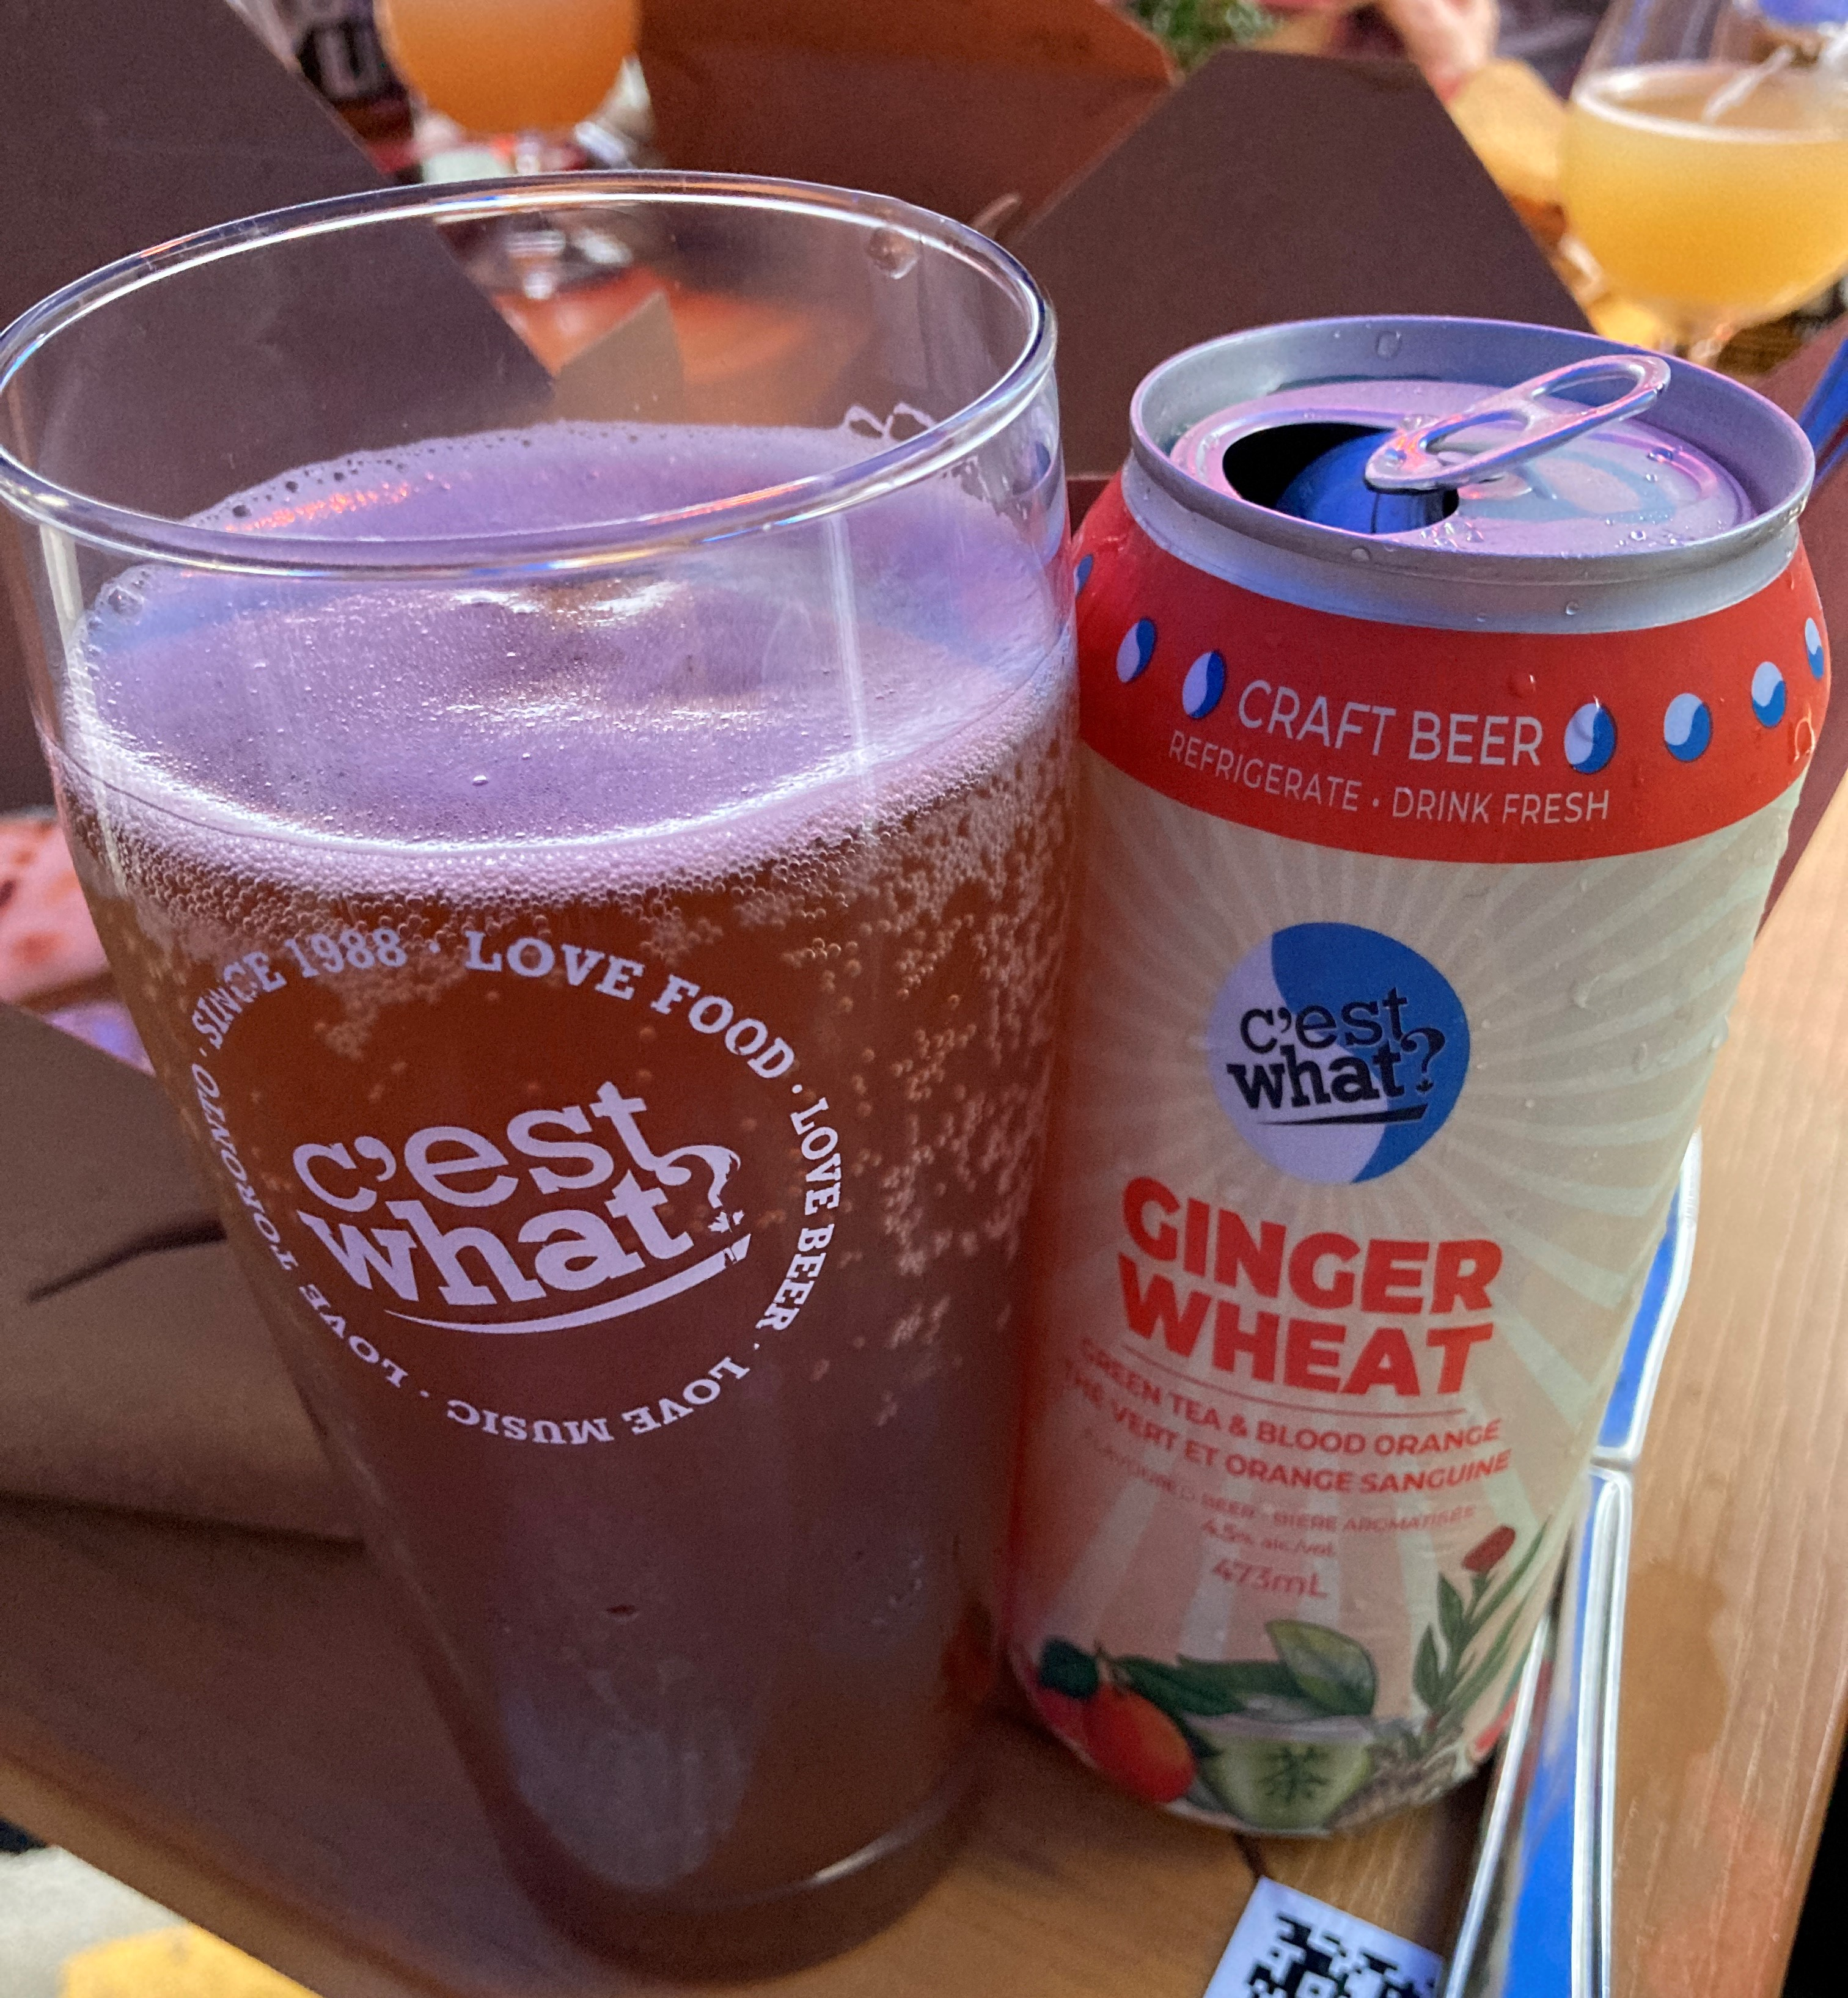 c'est_what_ginger_wheat (6)